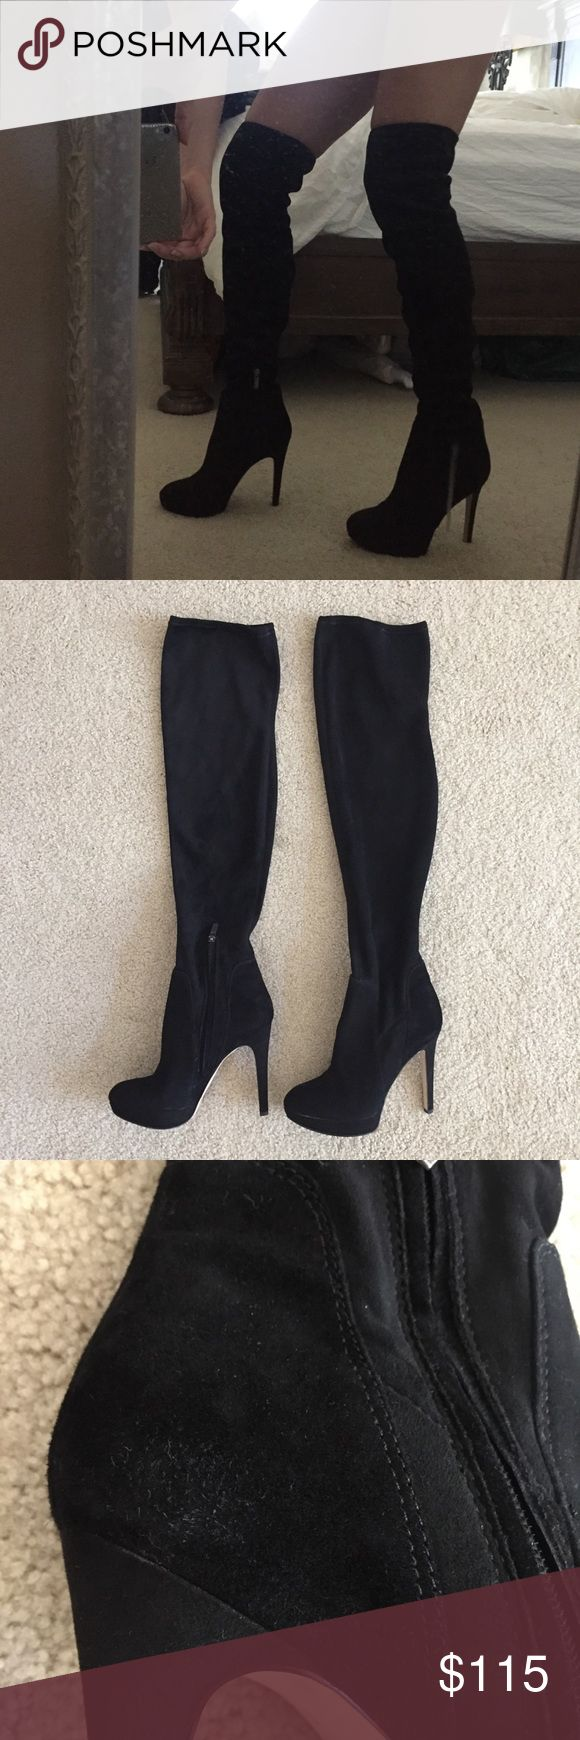 Sam Edelman over the knee boots sexy black 7 suede Amazingly sexy!  In overall good condition, small fuzzy spot on inner left heel and scratch on toe of left heel, see photos. See photos for measurements too. Very stretchy suede material. These will best fit a larger calf size. My calf measures 13 inches around, they're a little too baggy on me. (Style is supposed to be a little baggy they will work best for someone who has larger than 13 inch calves.) Looks HOT paired with a mini skirt! ;-)…